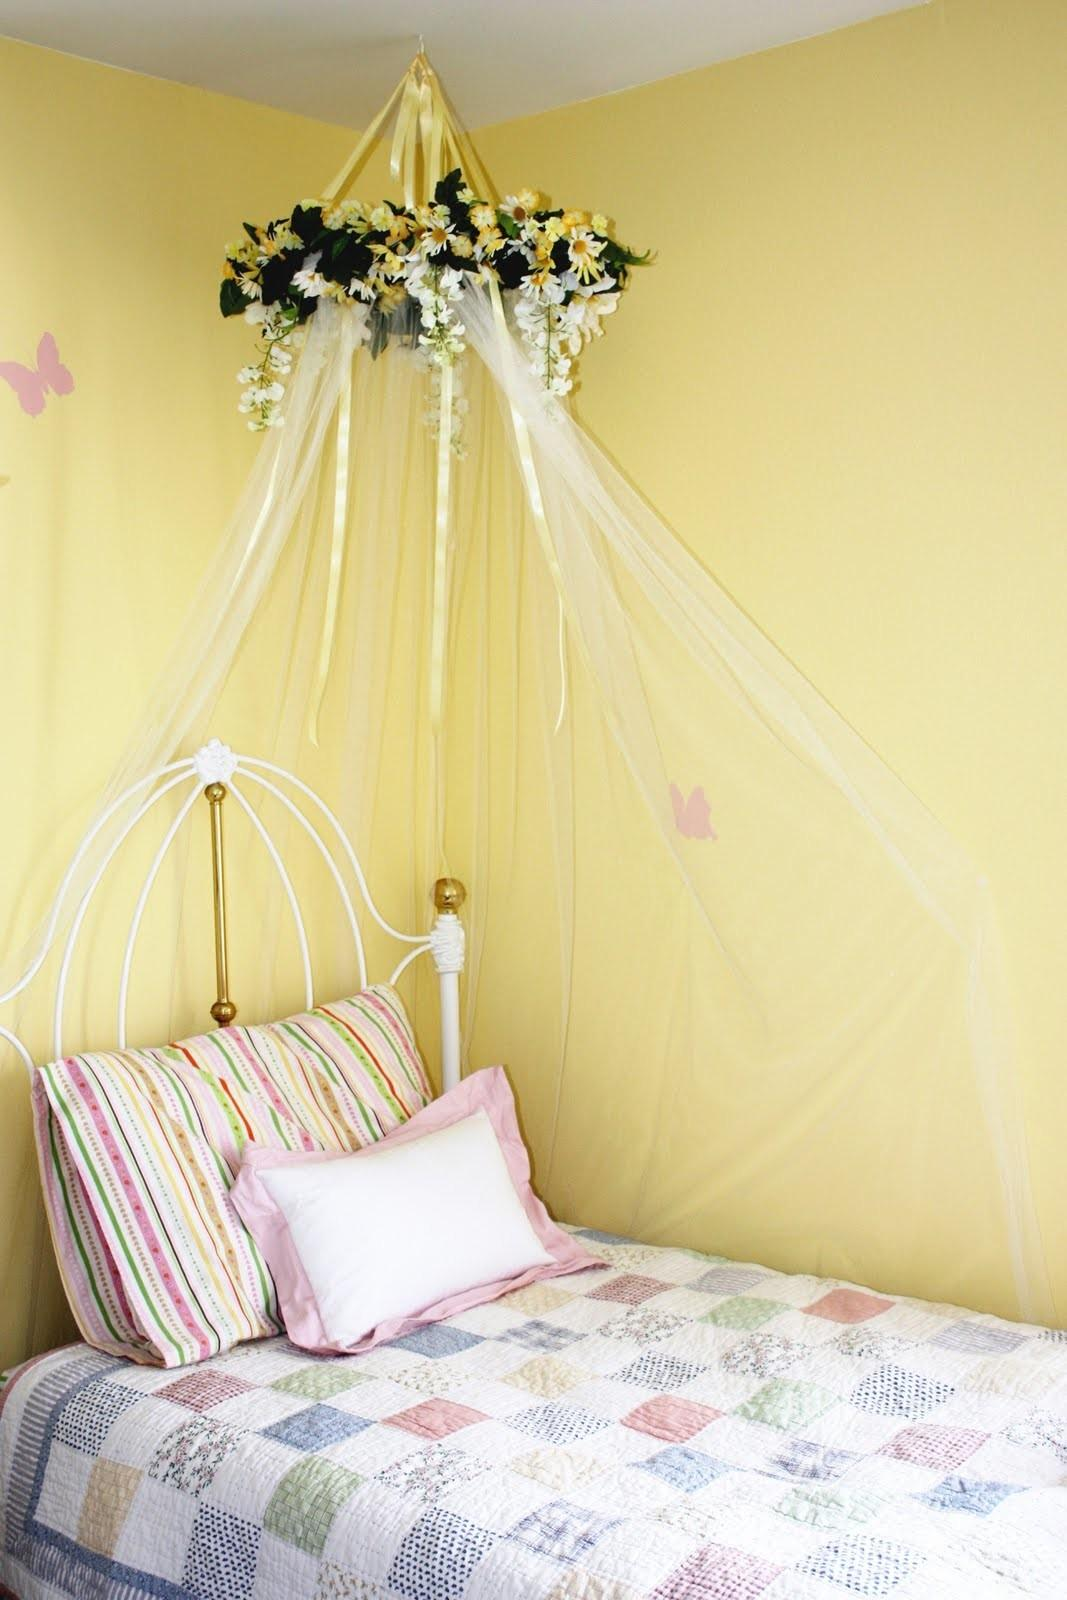 Everyday Art Diy Bed Canopy Little Girls Room